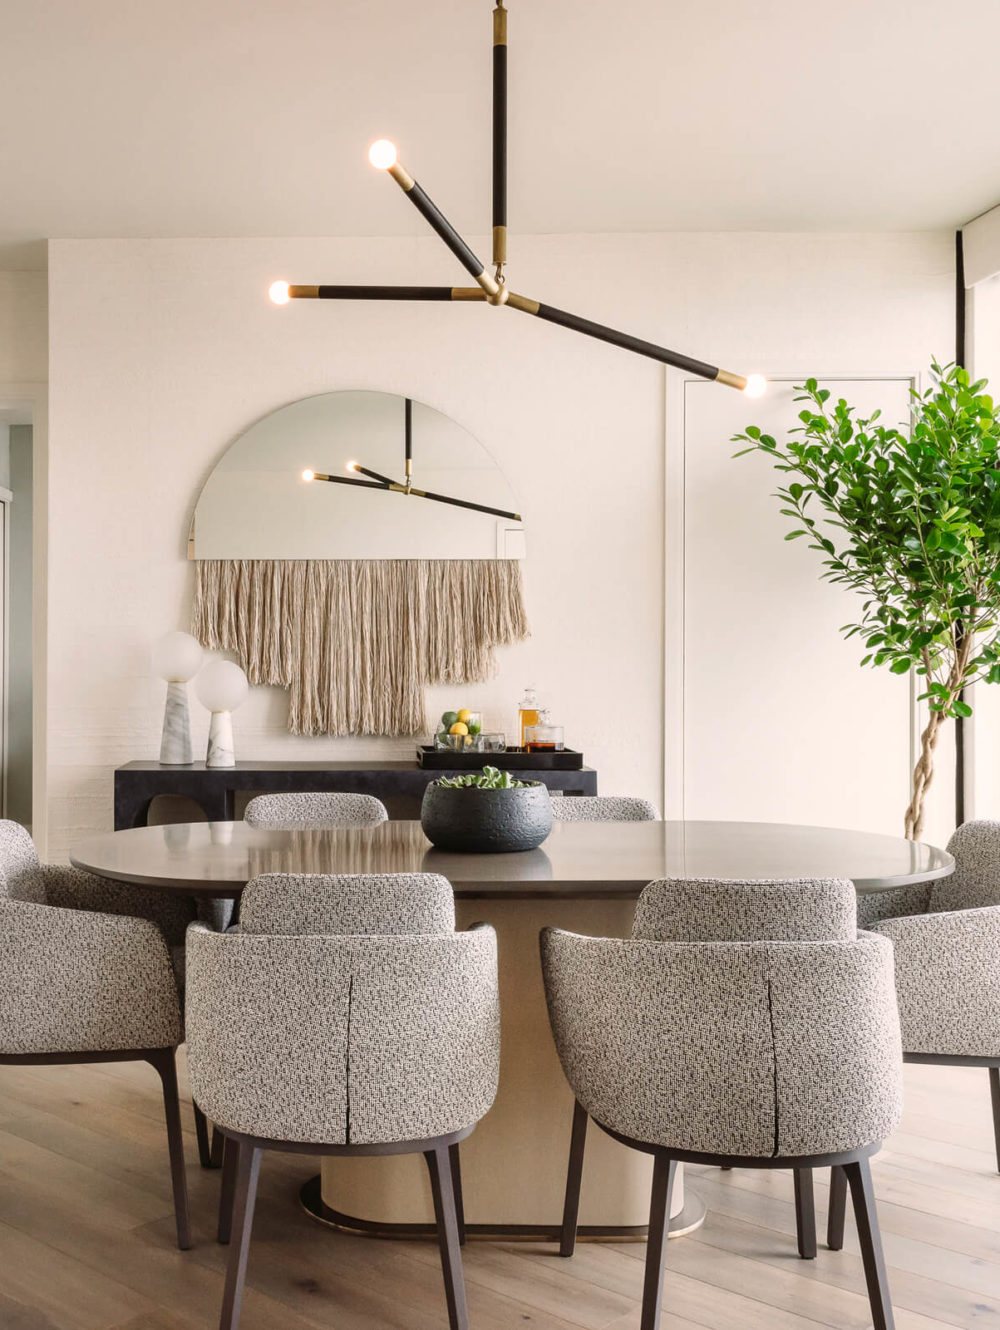 Dining table with a chandelier hanging above, white walls, and large windows at The Harrison luxury condos in San Francisco.